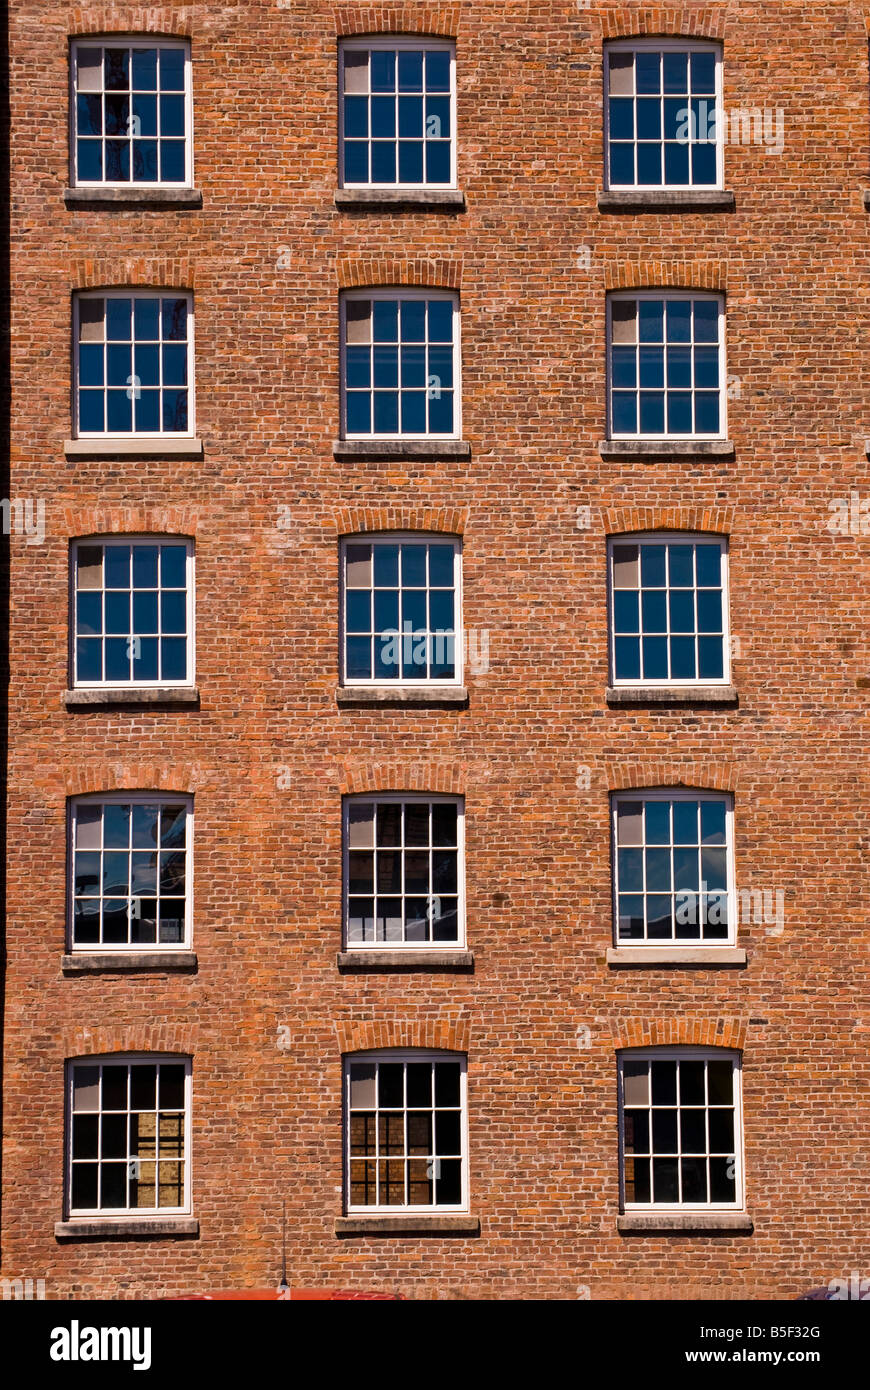 Windows And Brick Wall Of Converted Warehouse In Manchester Stock Photo Royalty Free Image